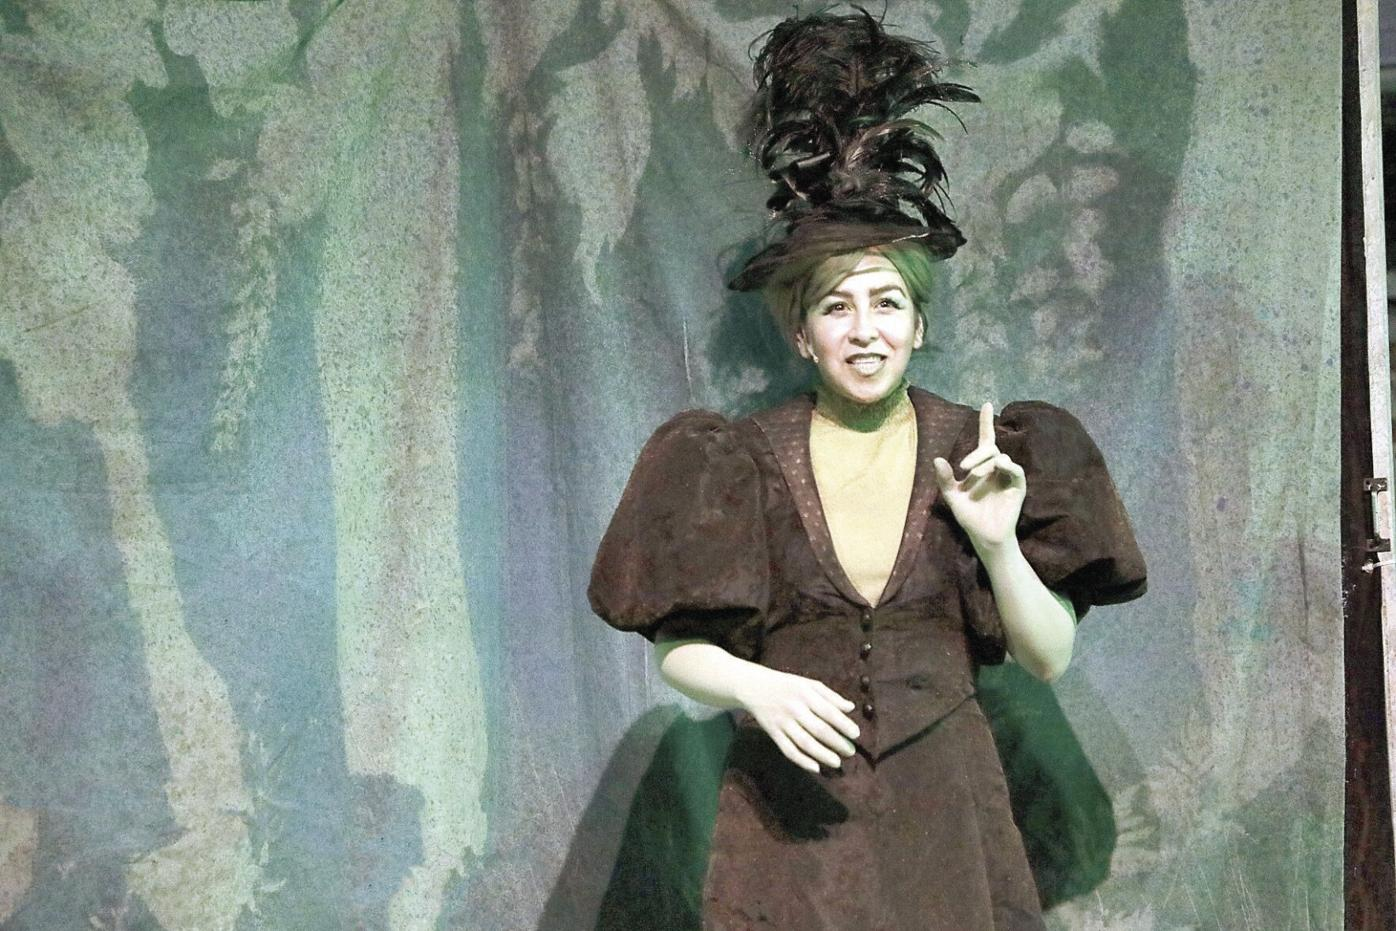 Woman in Wicked Witch Costume